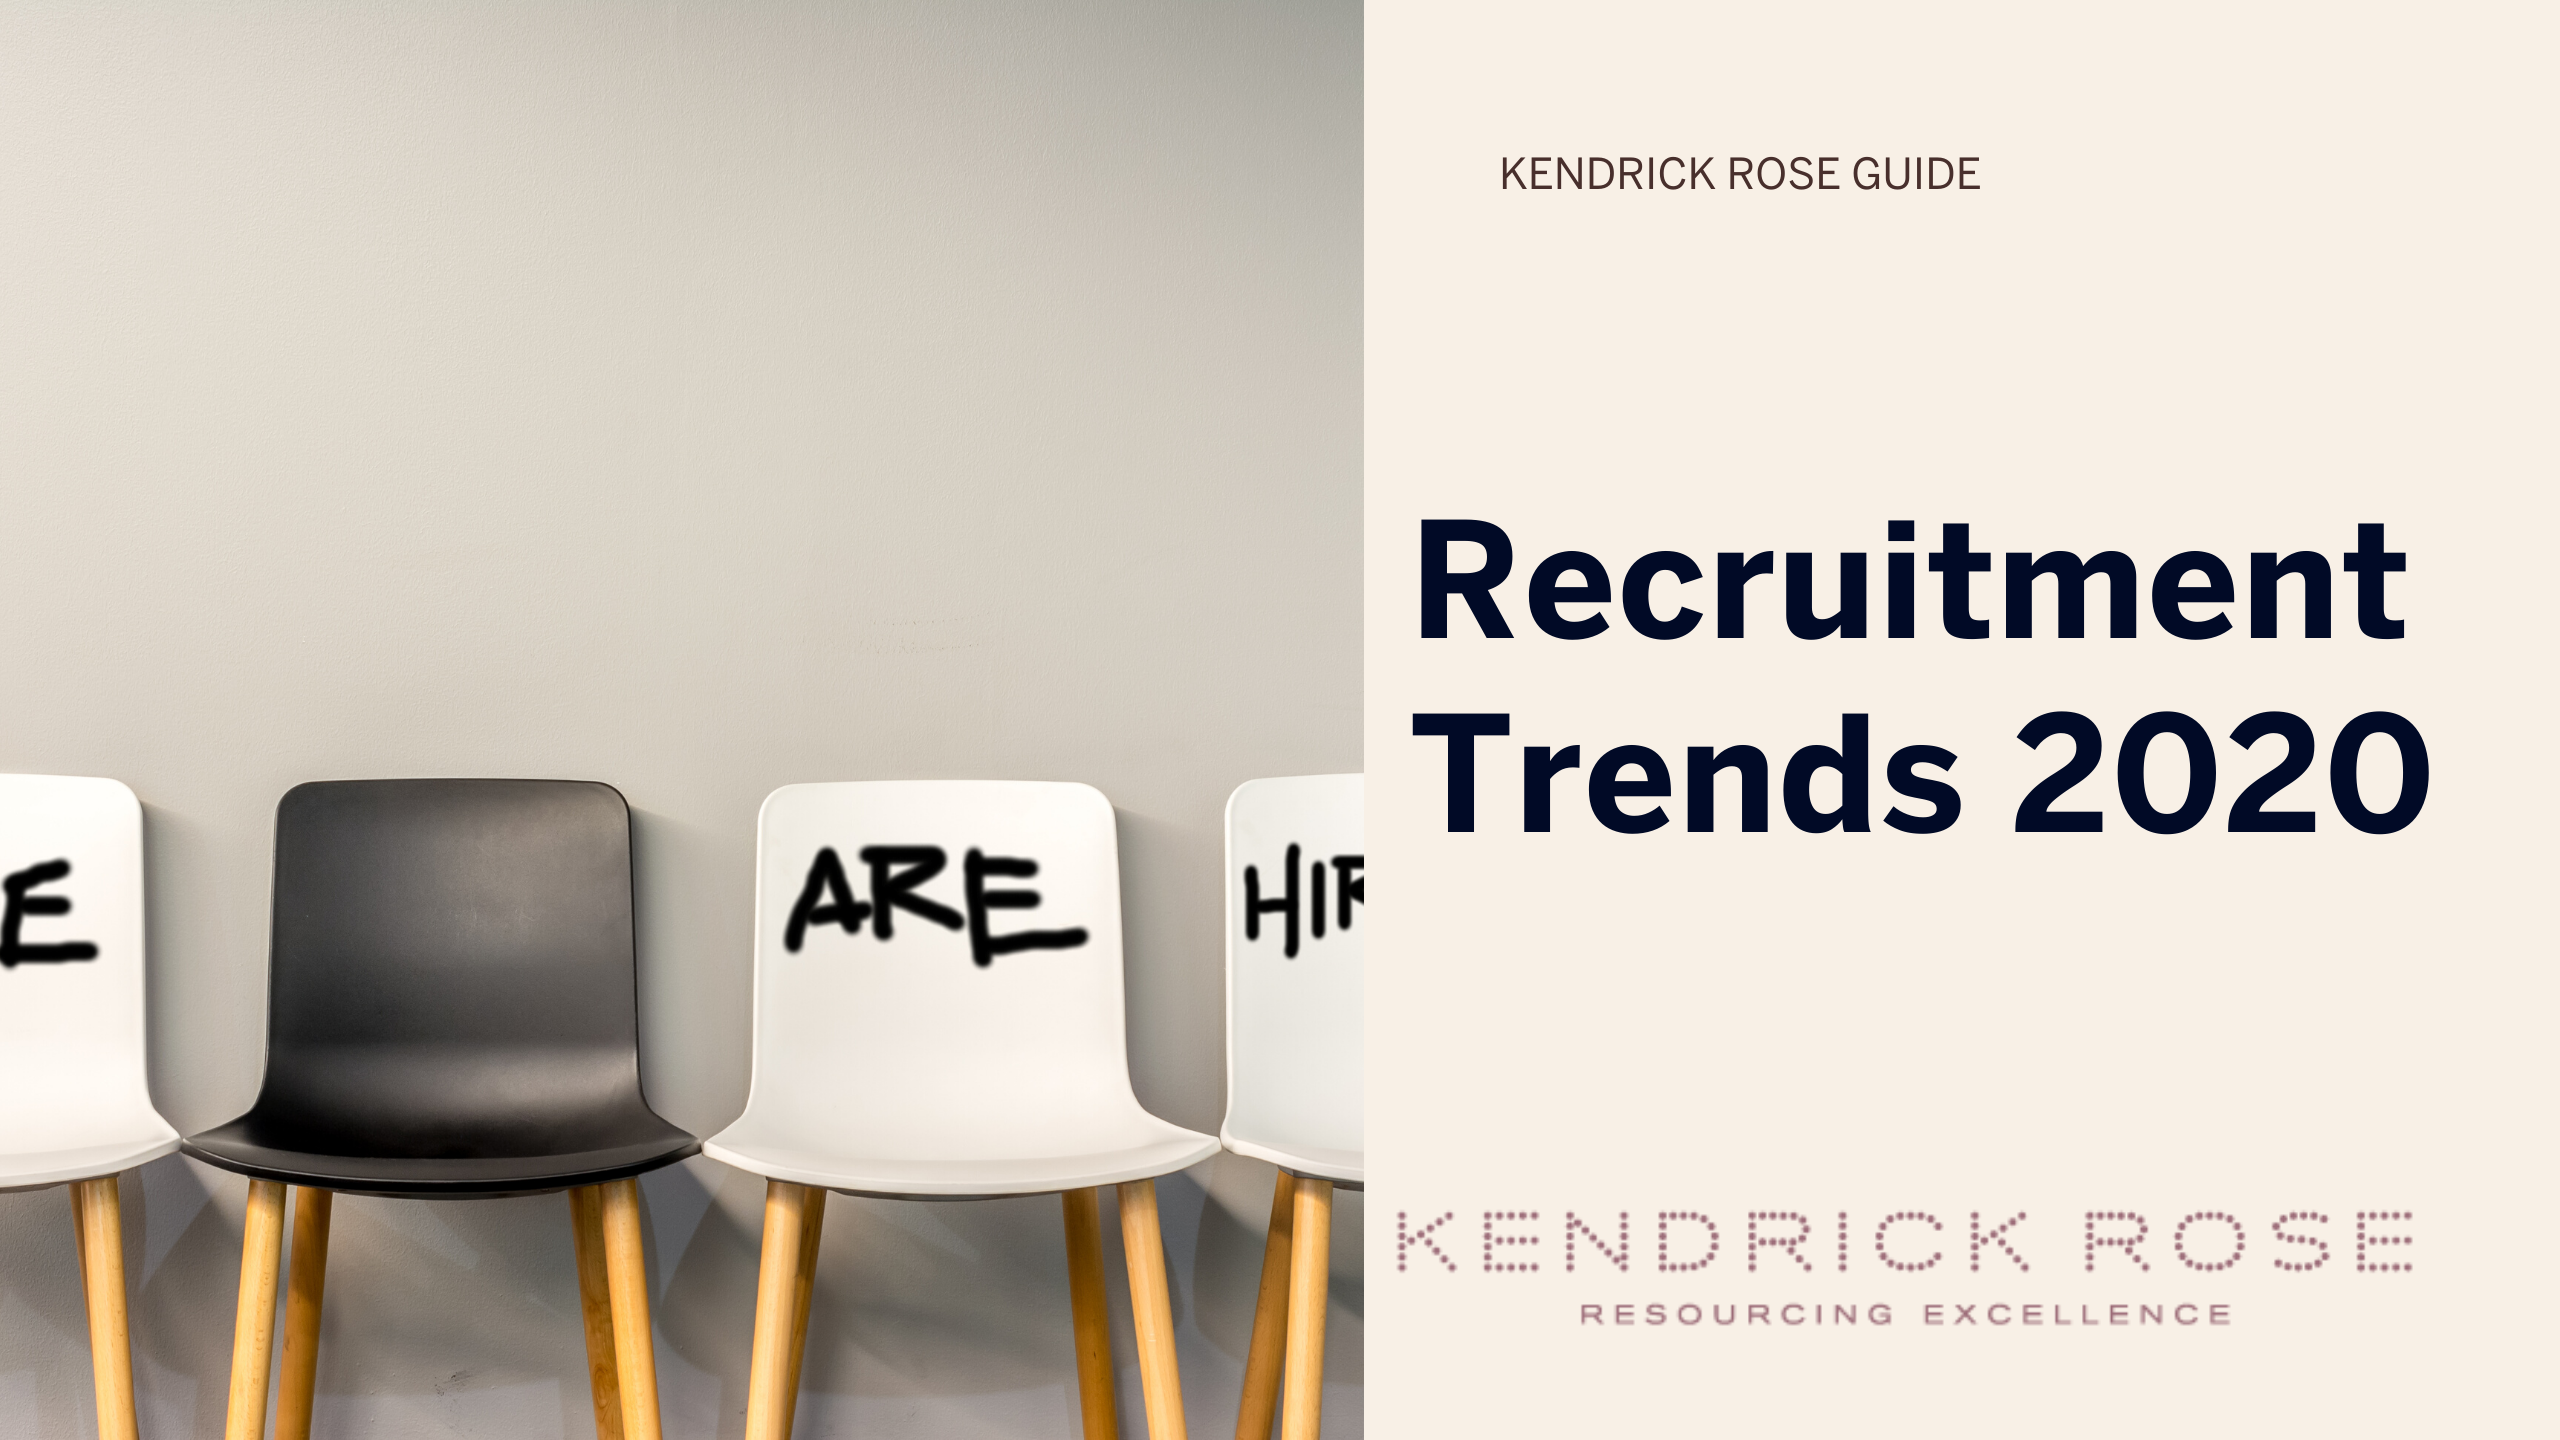 Recruitment Trends 2020 1